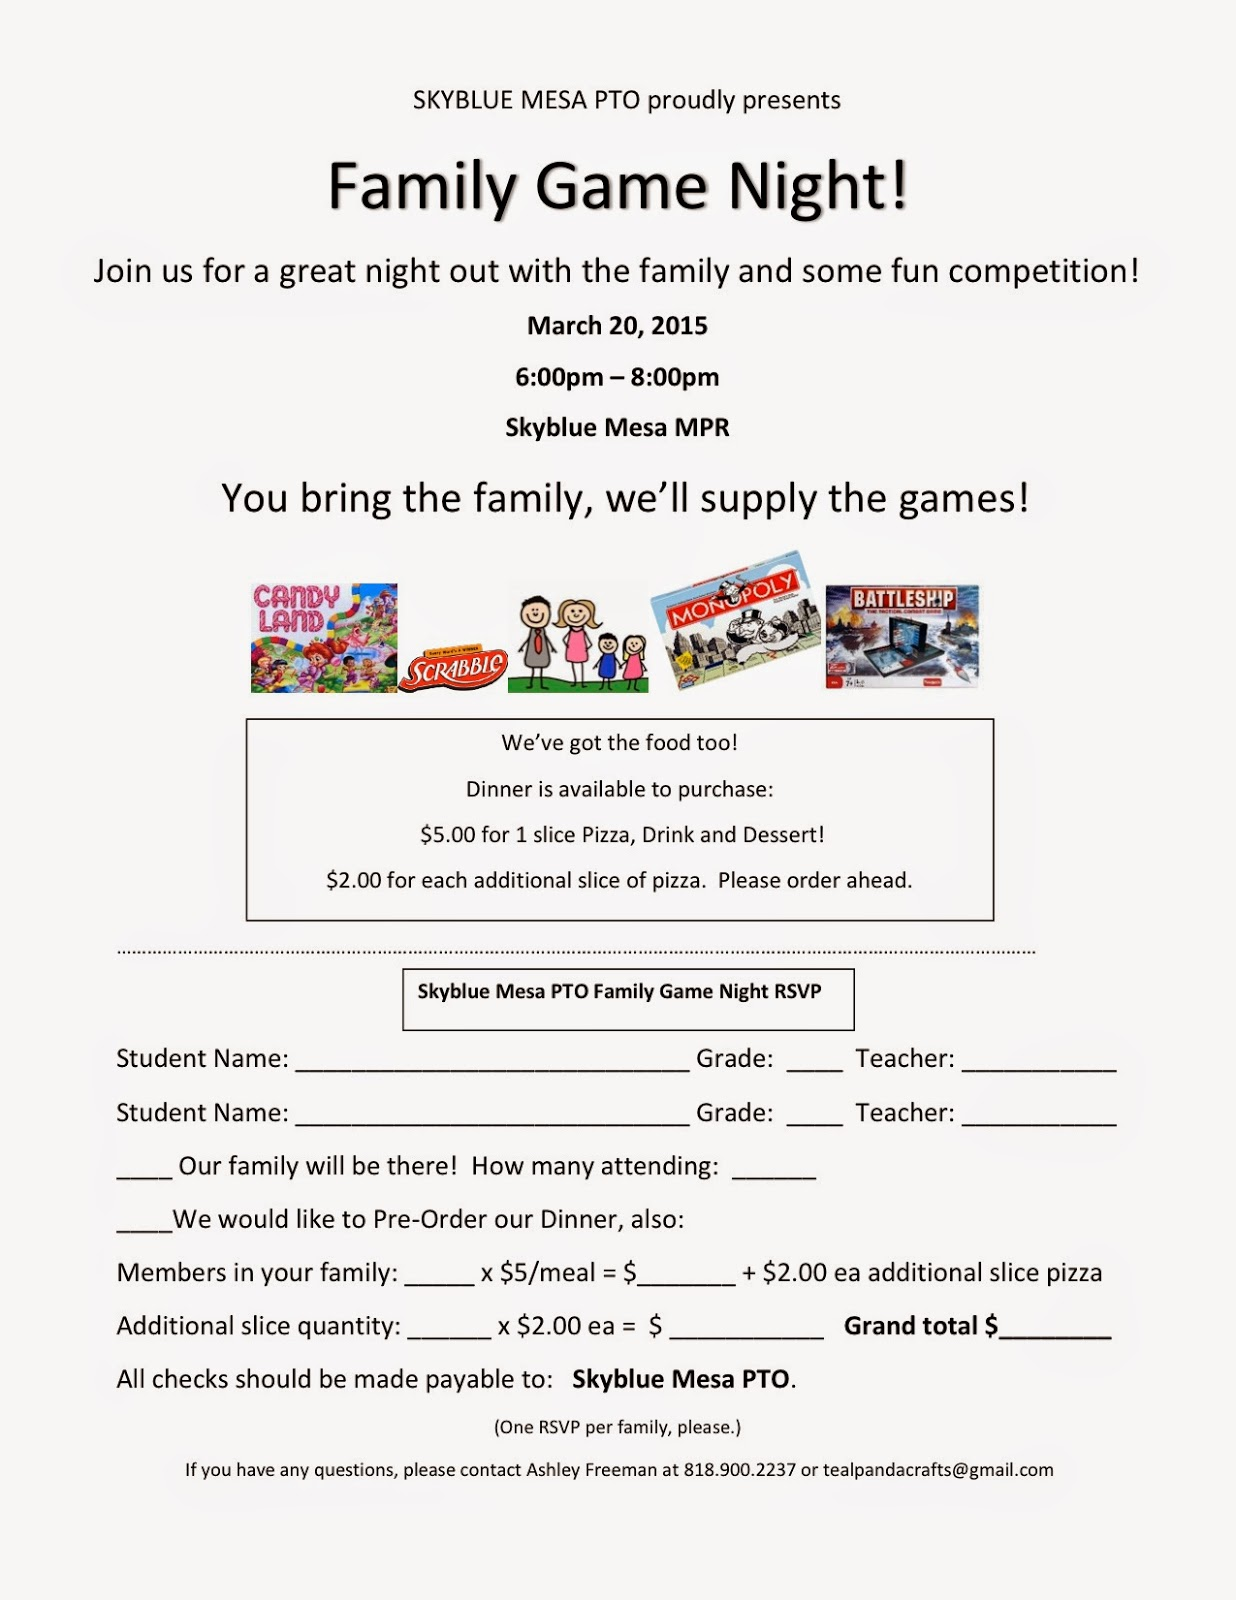 Skyblue Mesas Family Game Night Is Coming Up This Week Friday March 20th 6pm 8pm Please RSVP NOWdont Miss Out On The Fun